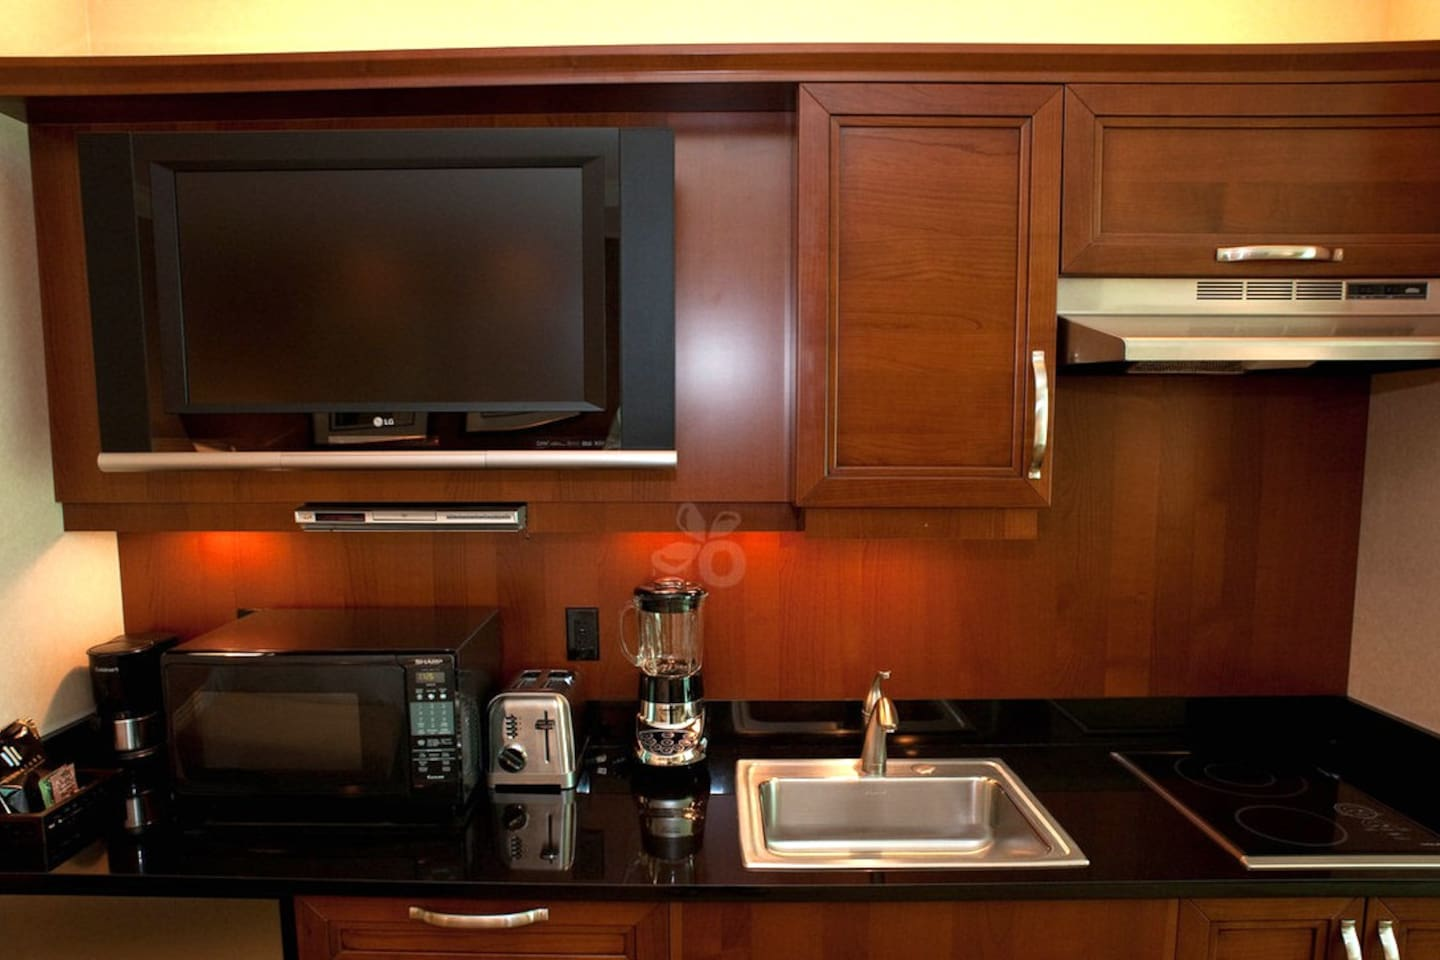 MGM Signature 2BR 2BA Balcony Suite   Apartments for Rent in Las Vegas   Nevada  United States. MGM Signature 2BR 2BA Balcony Suite   Apartments for Rent in Las